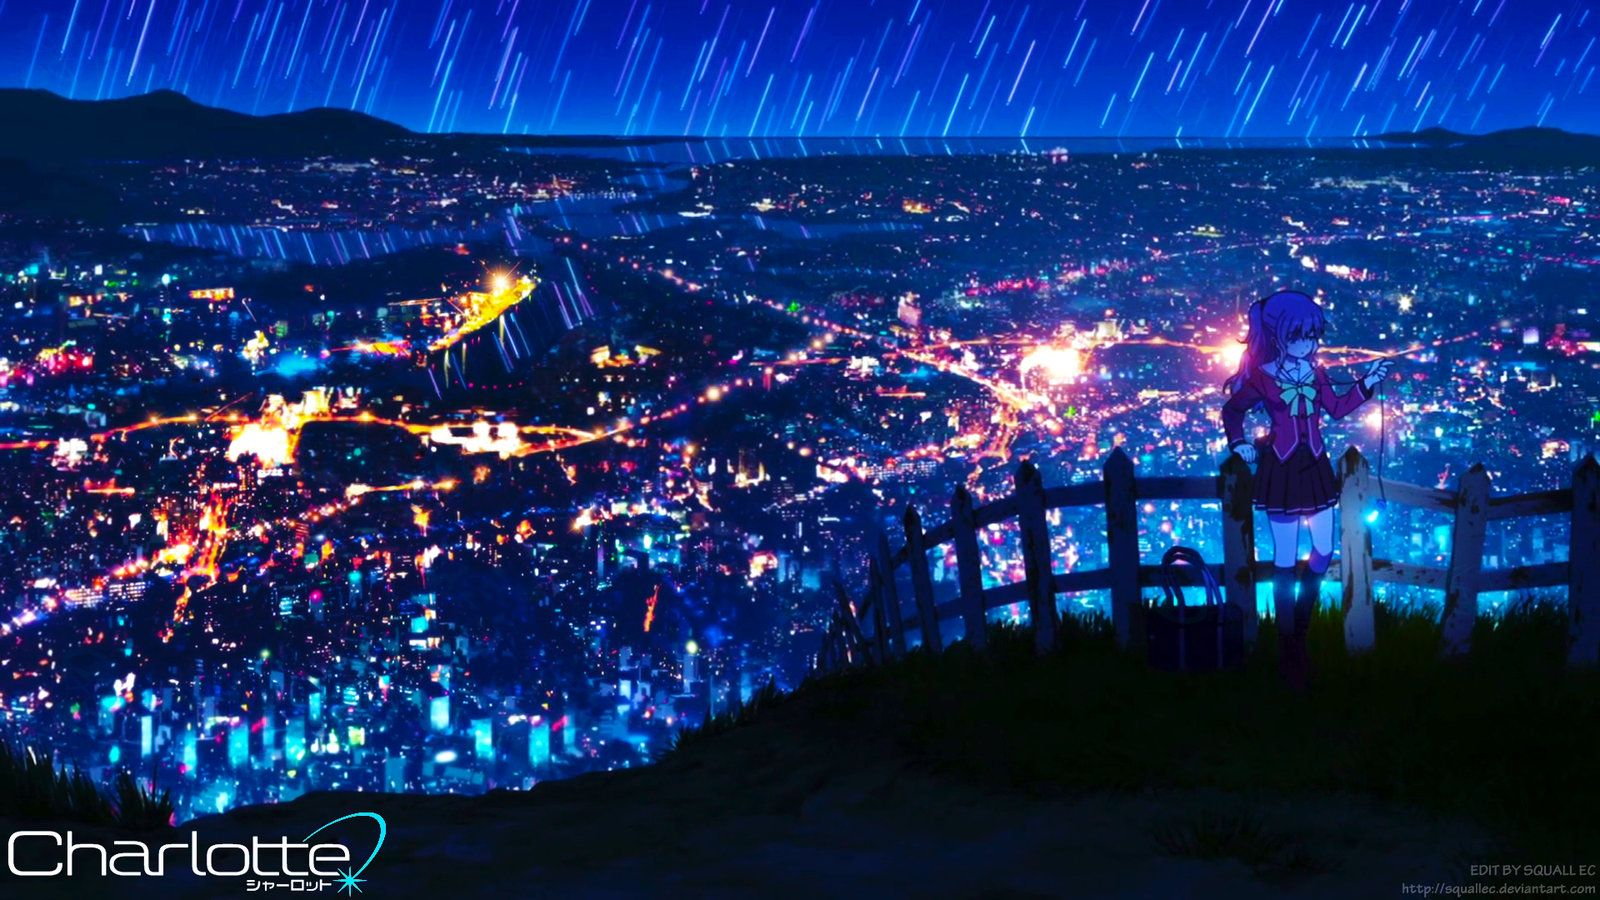 anime city backgrounds night wwwimgkidcom the image